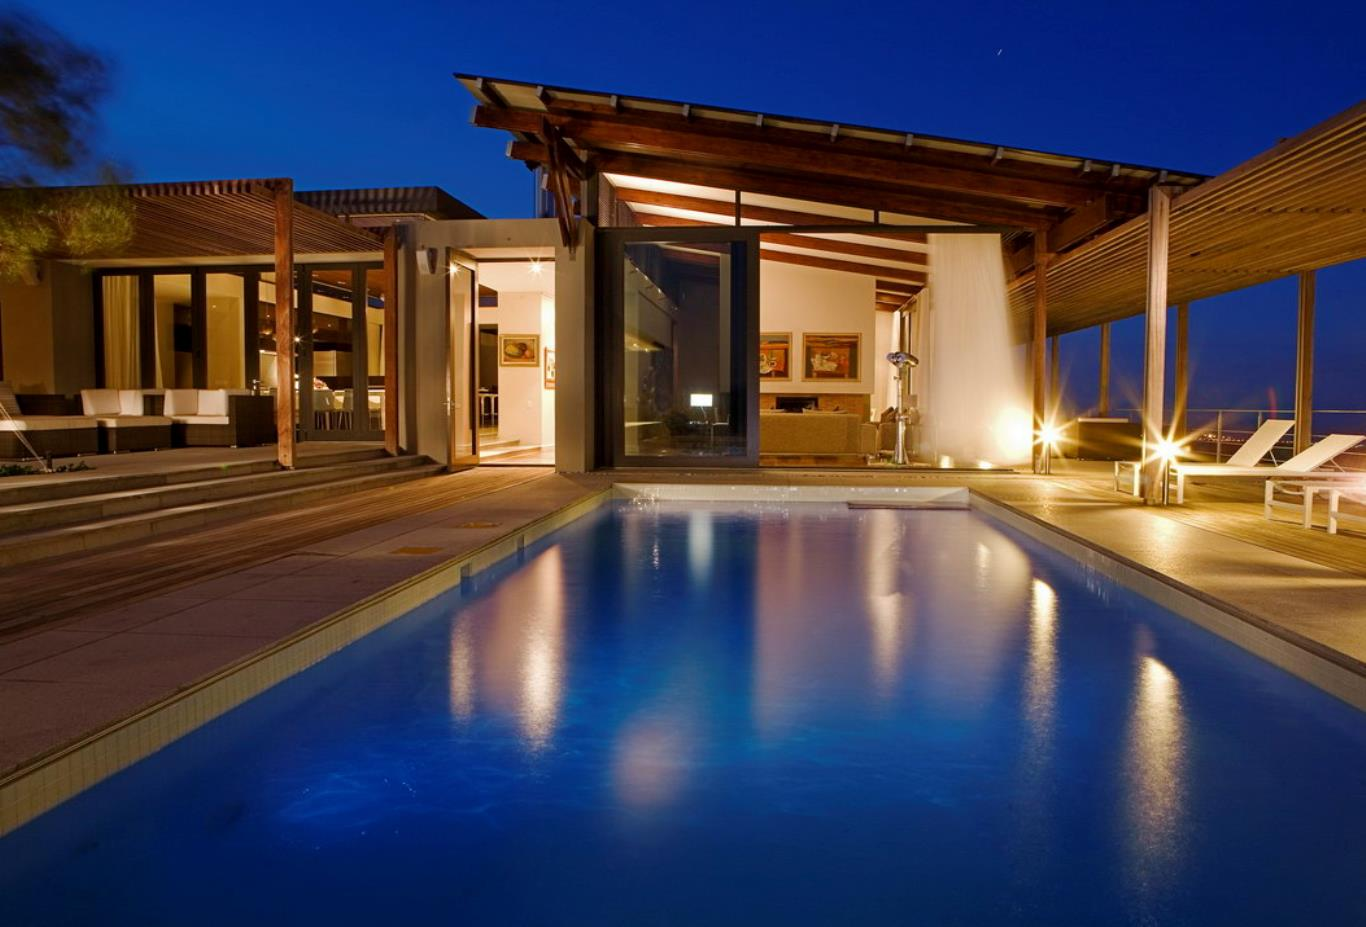 The Villa Pool at night